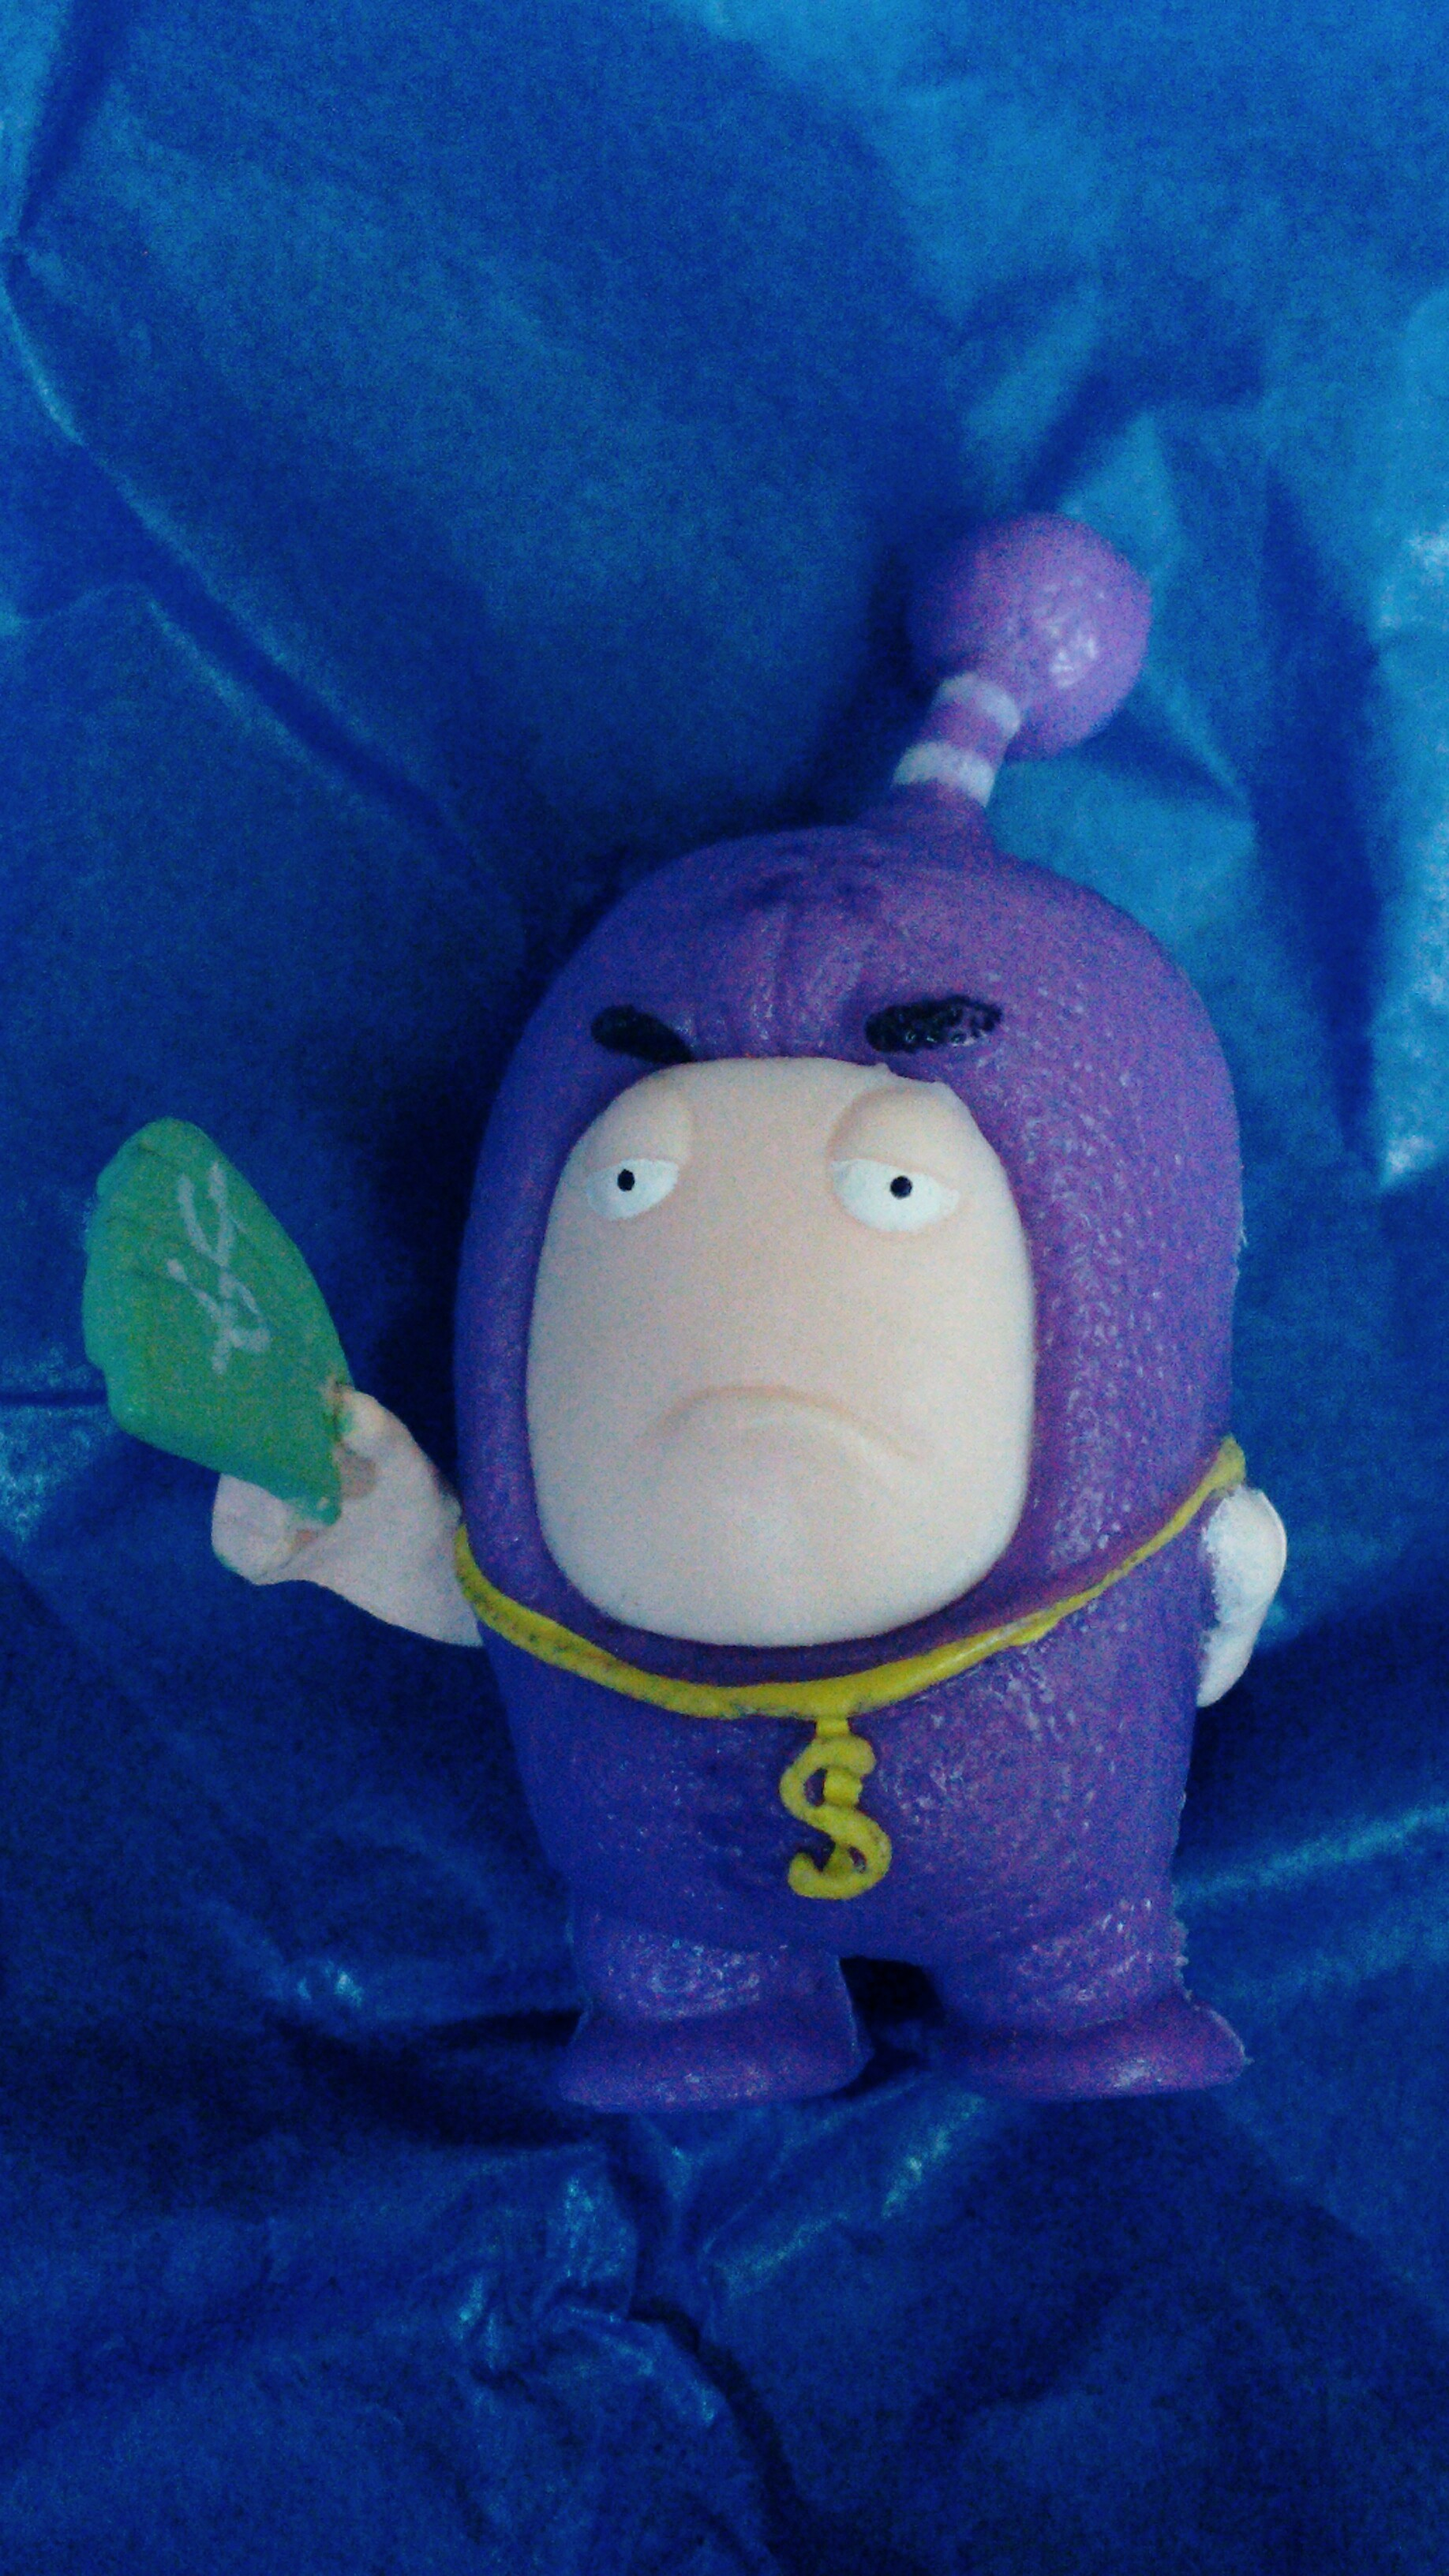 Oddbods toy stocking filler